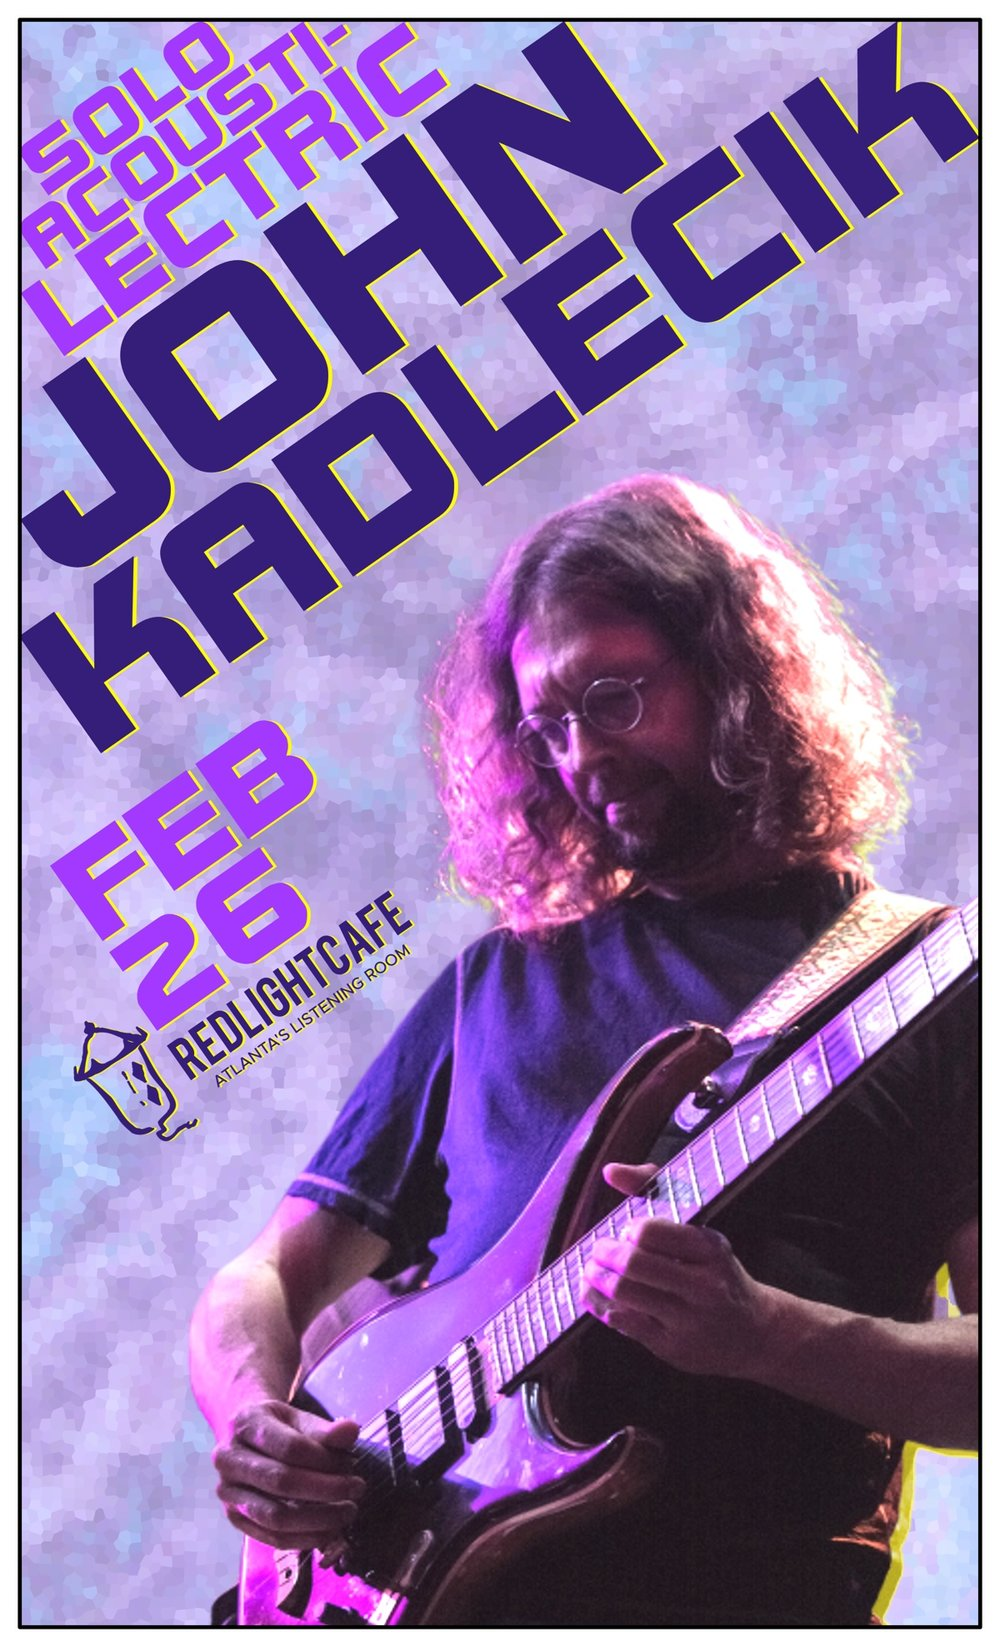 John Kadlecik: Solo Acousti-Lectric — February 26, 2019 — Red Light Café, Atlanta, GA